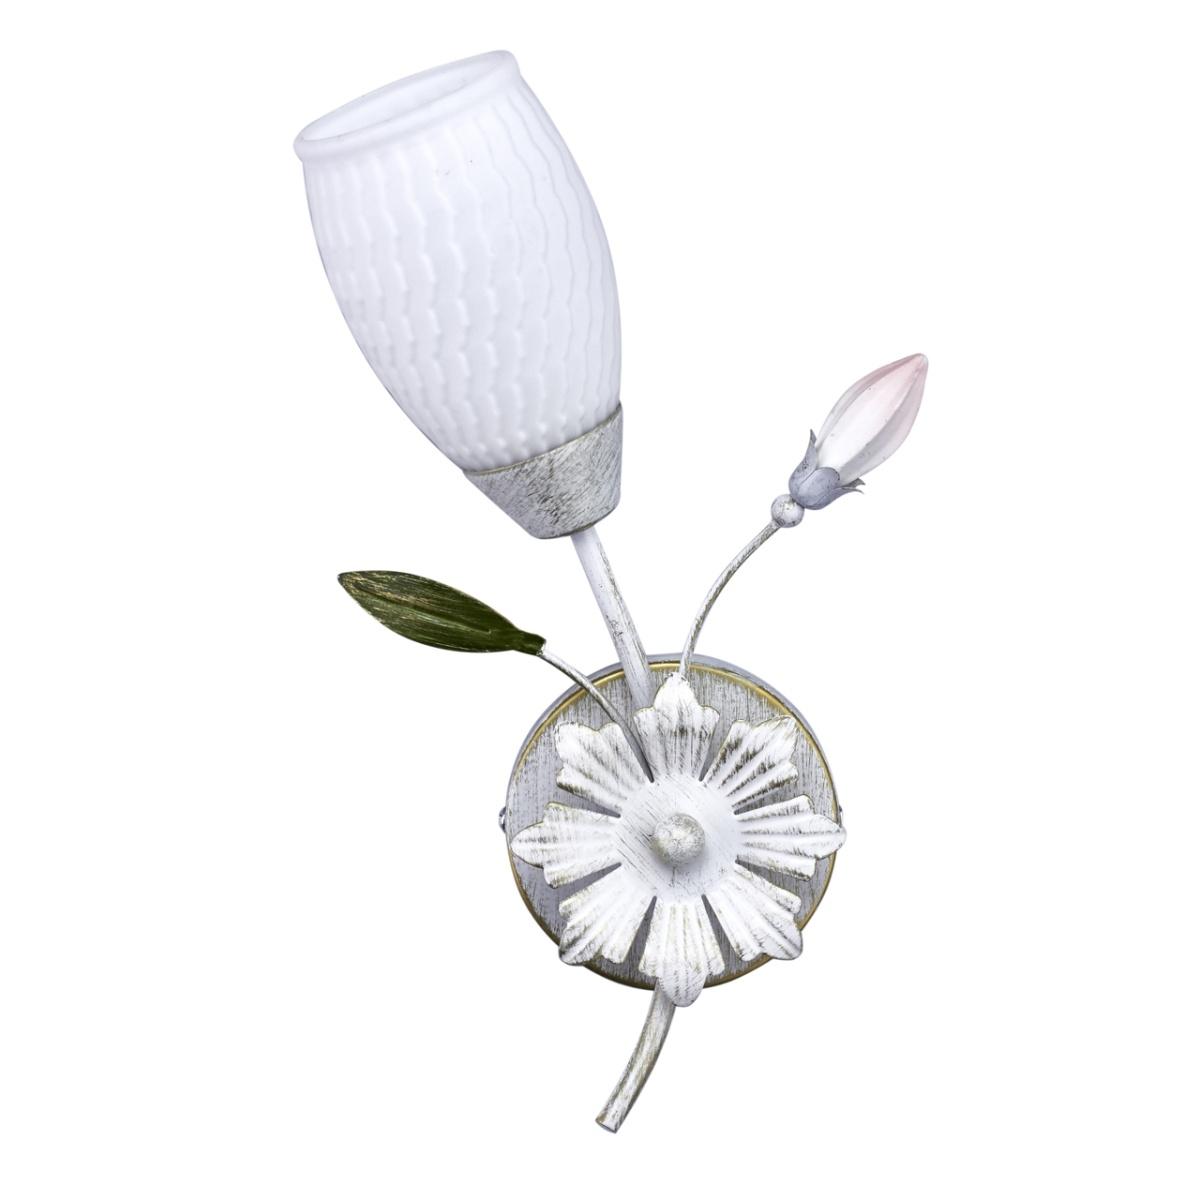 Aplica MW-Light Flora Verona 334024001 imagine